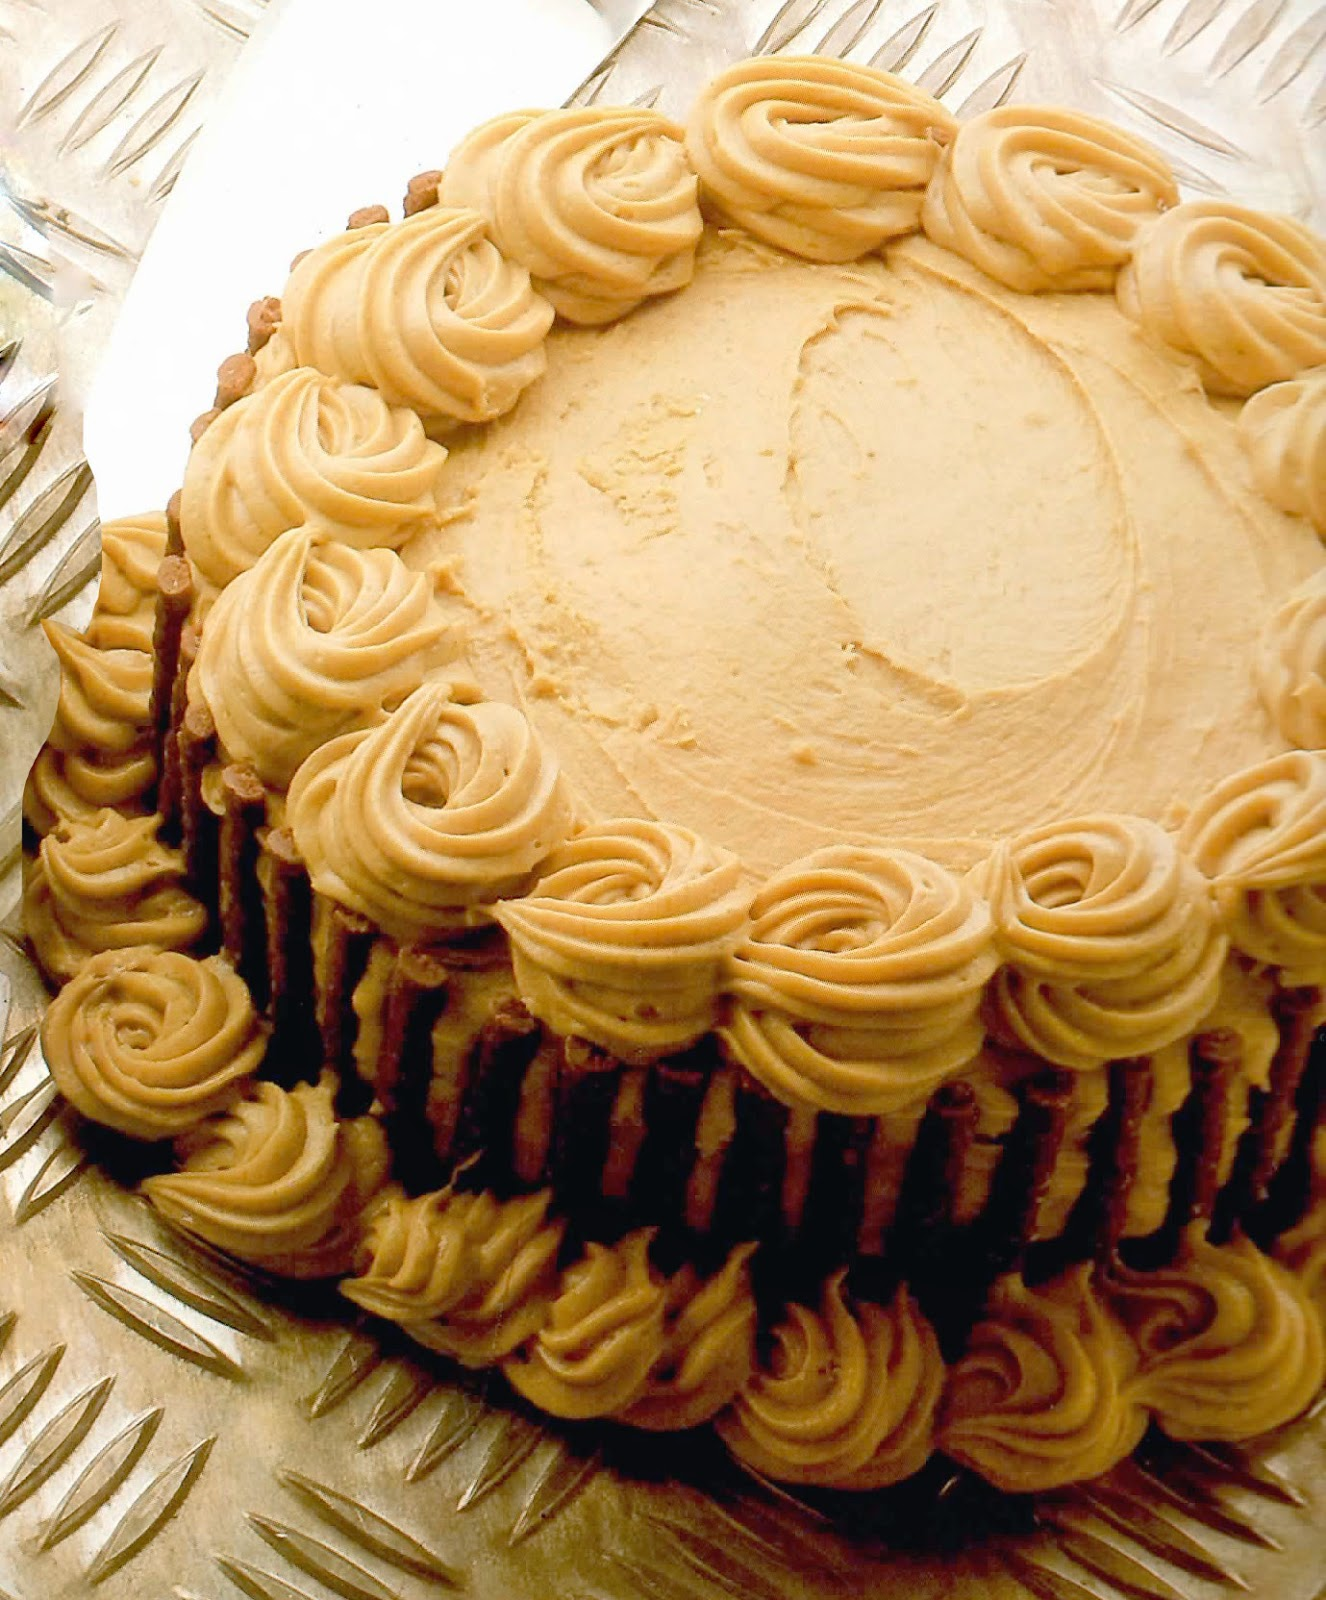 Microwave Coffee House Gâteau: A classic Genoese-style sponge cake with a rich buttercream and walnut frosting that's designed to be cooked quickly in a microwave.